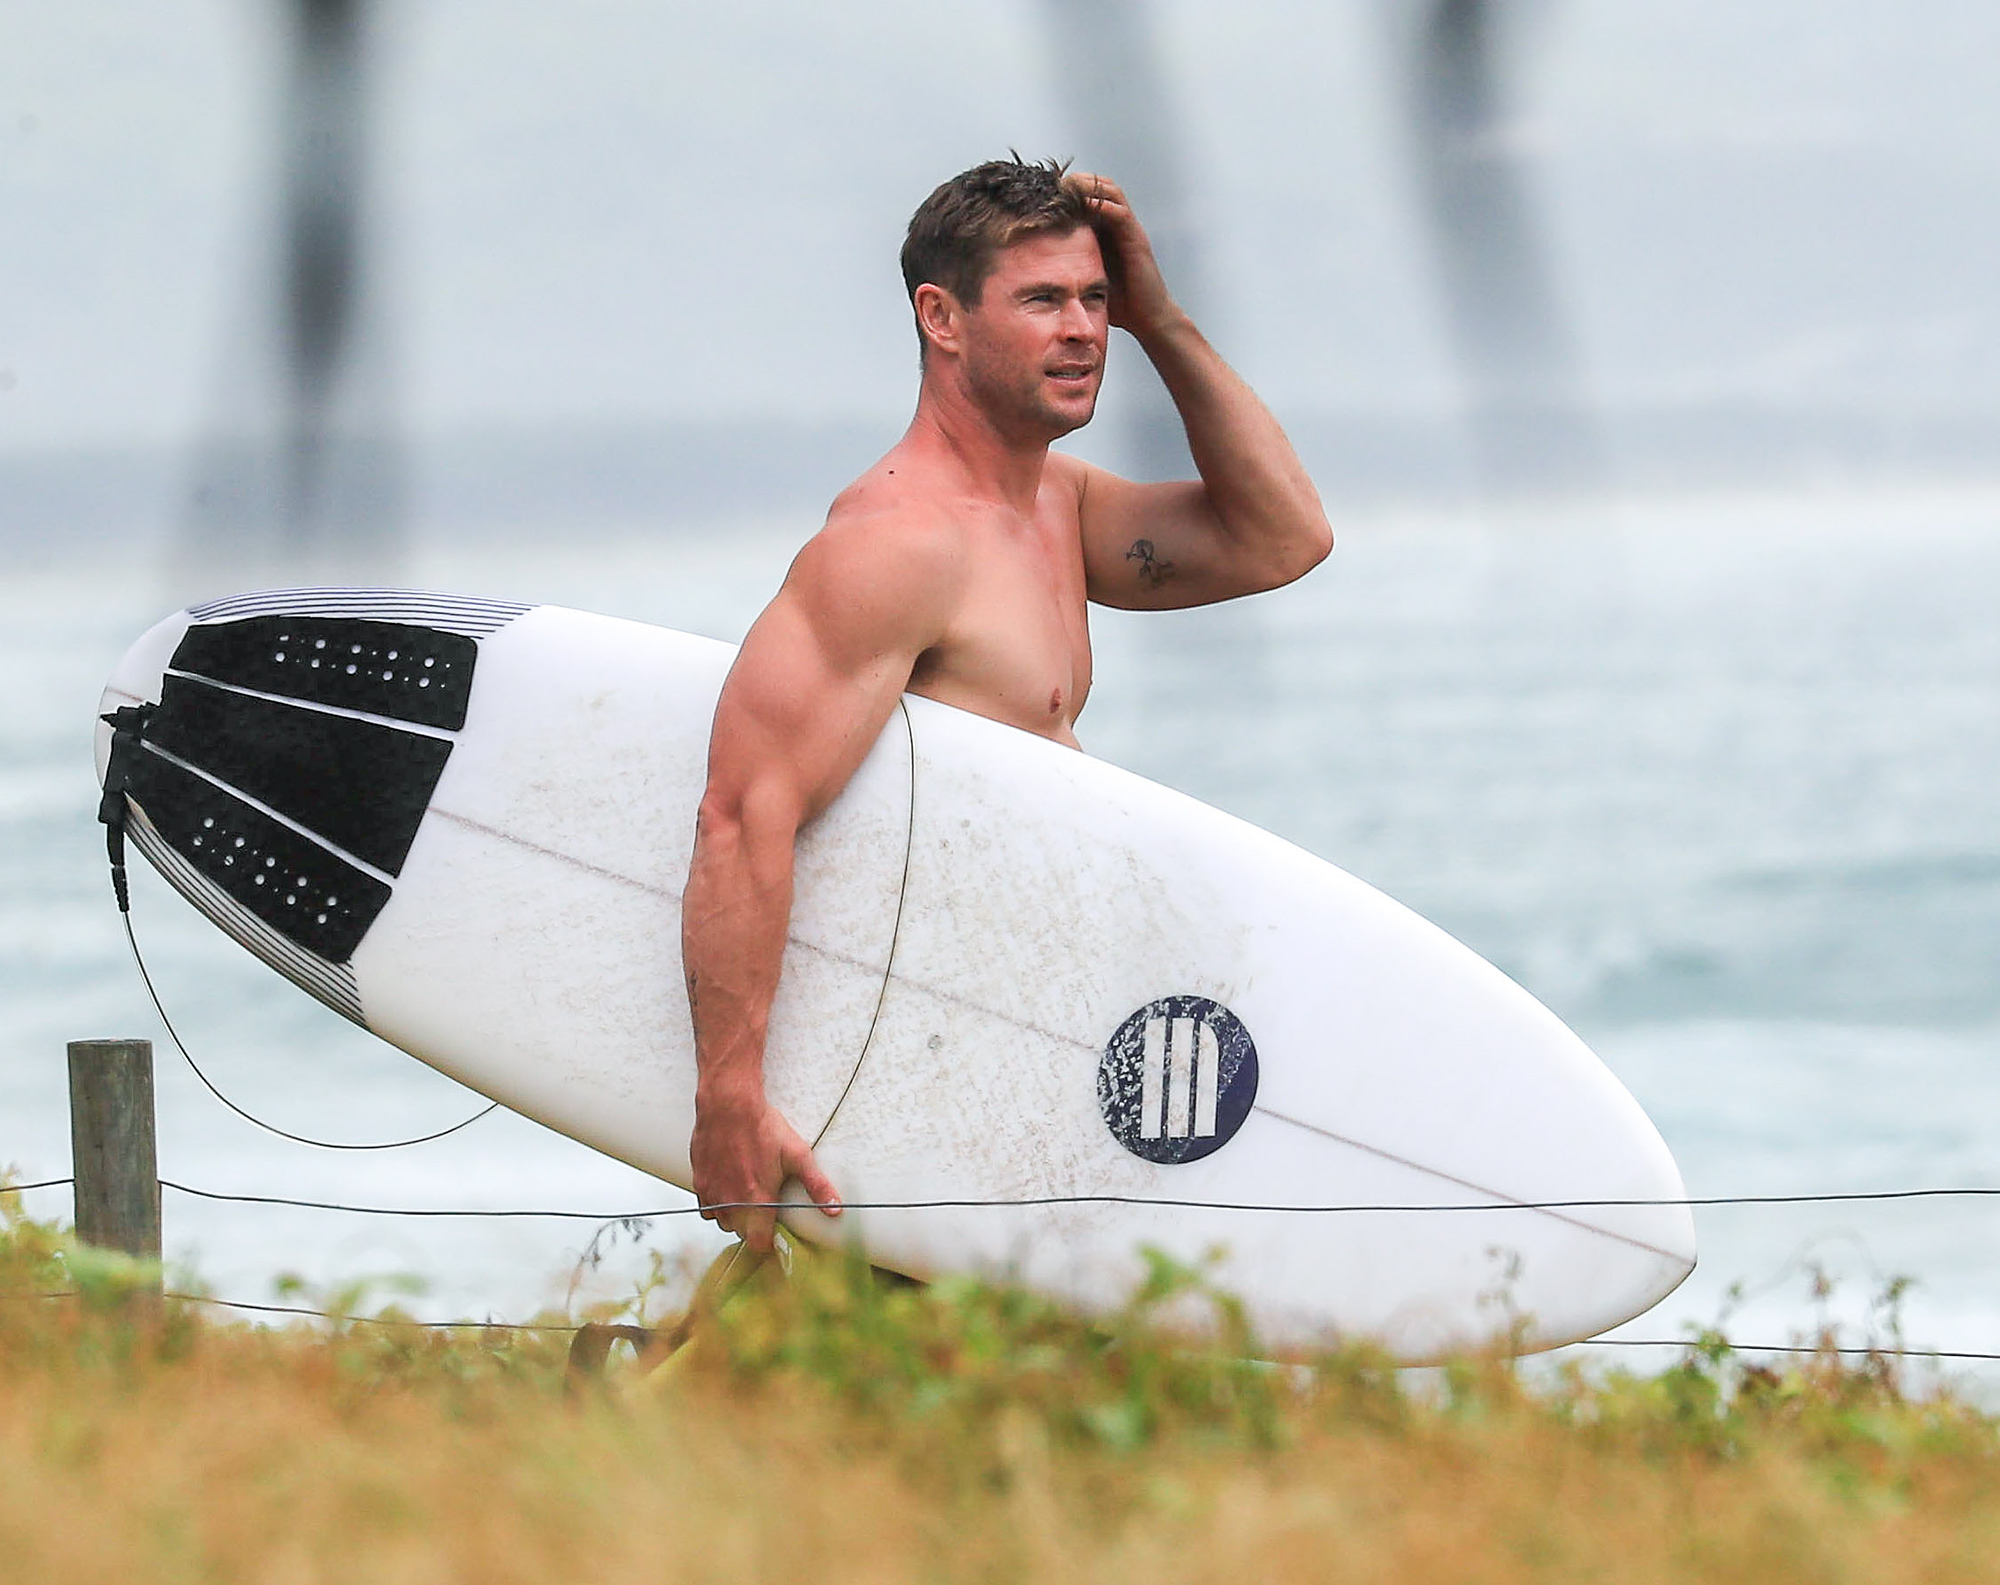 EXCLUSIVE: *NO MAIL ONLINE* Chris Hemsworth enjoys a morning surf during his festive break in Byron Bay, Australia